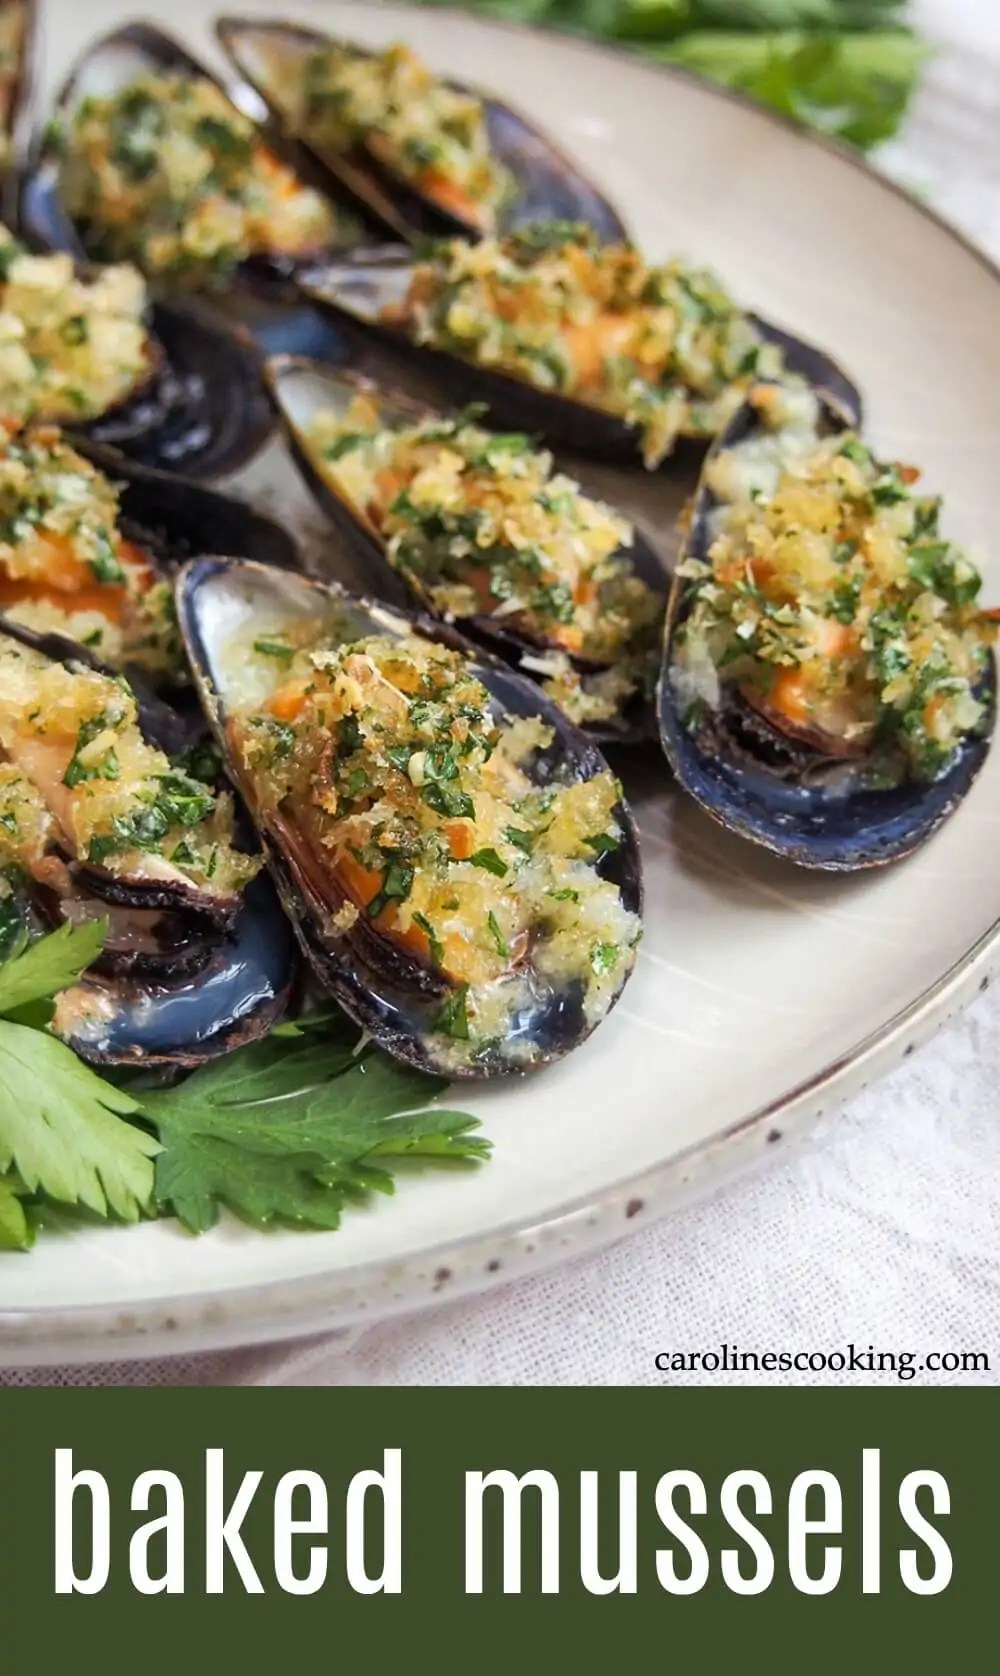 These baked mussels are easy to prepare and make a great appetizer for any occasion. Tender mussels with a tasty garlicy crumb topping - they're elegant finger food (that's budget-friendly too). #mussels #italianfood